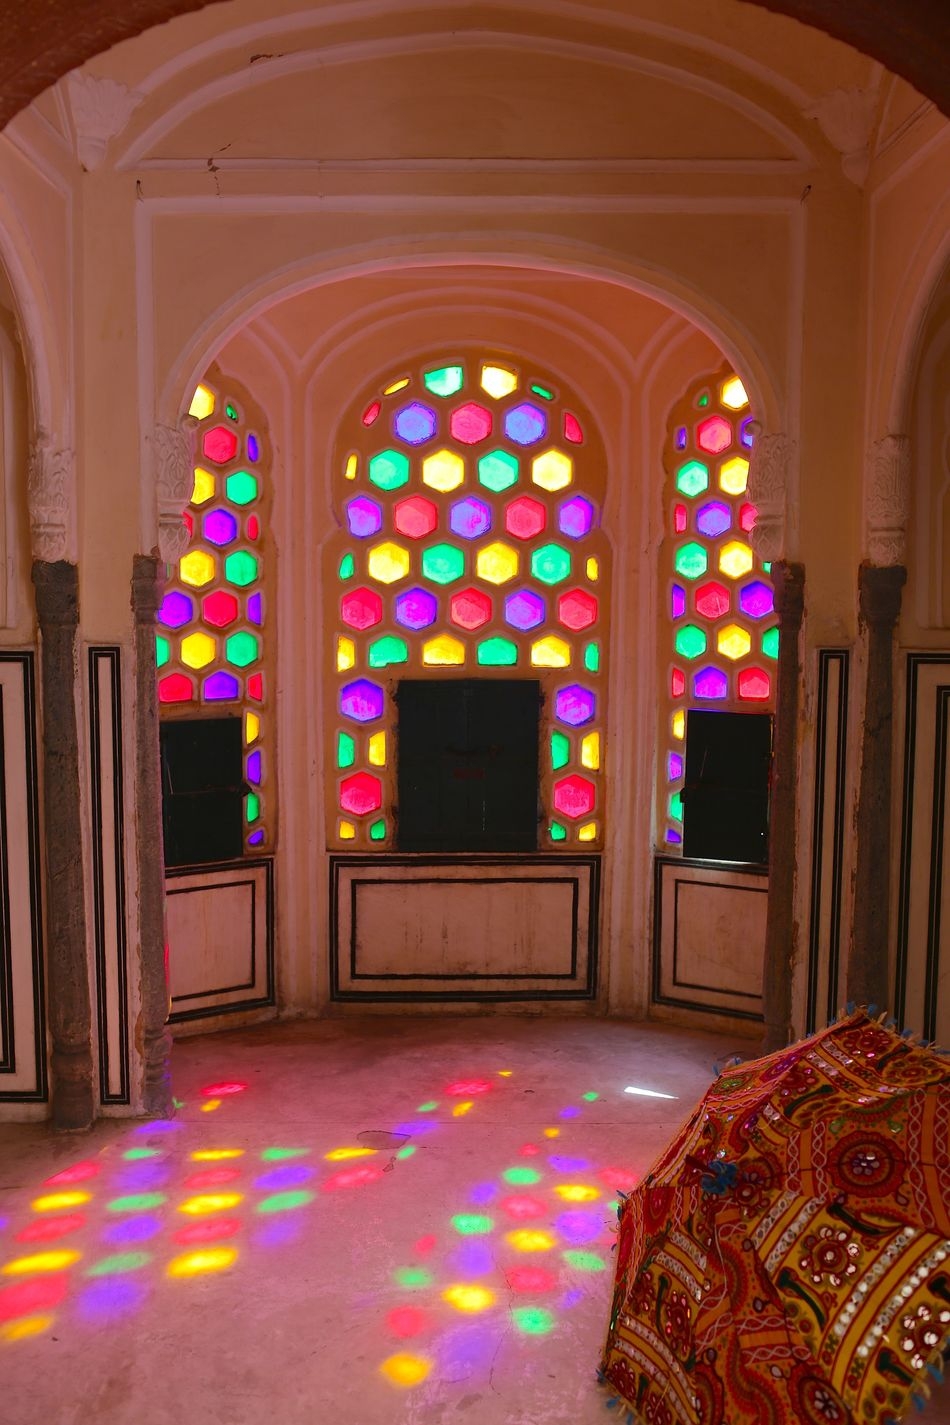 Arch Architecture Day Illuminated Indoors  Millennial Pink Multi Colored No People Shadows & Lights Stained Glass Travel Destinations Travel Photography